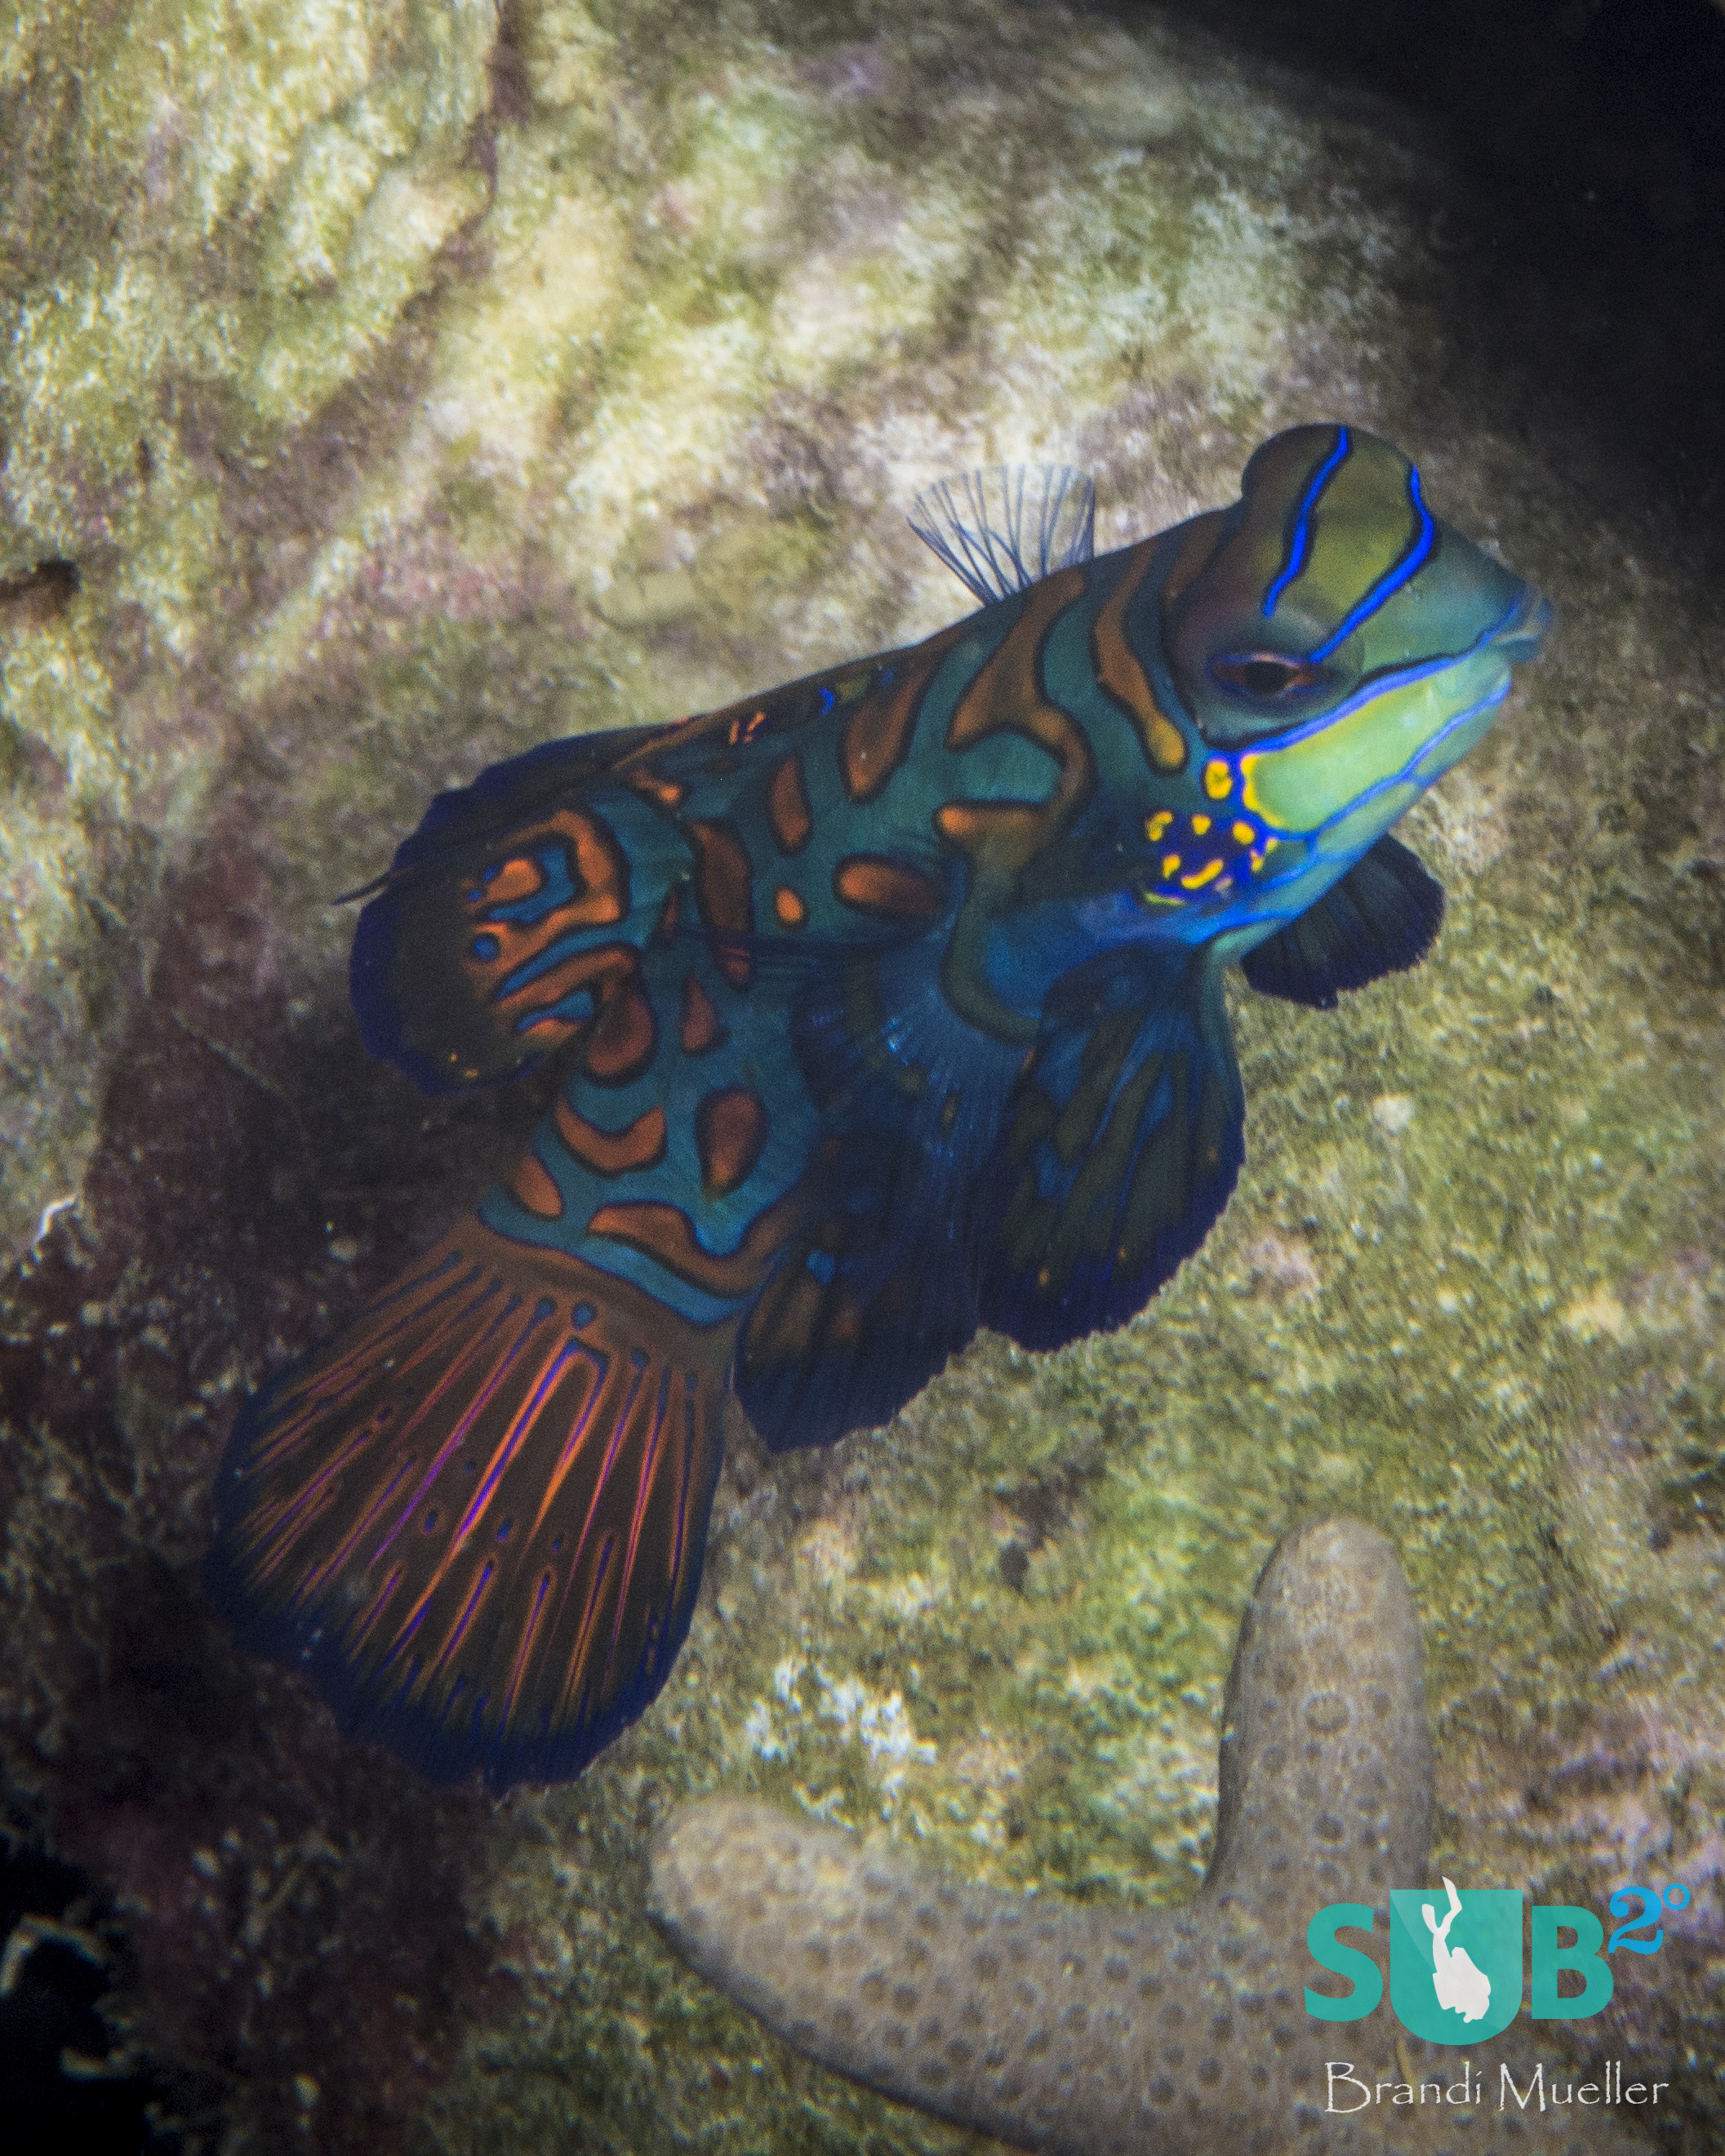 Female mandarinfish tend to be slightly smaller and lack the long dorsal fin that males have.